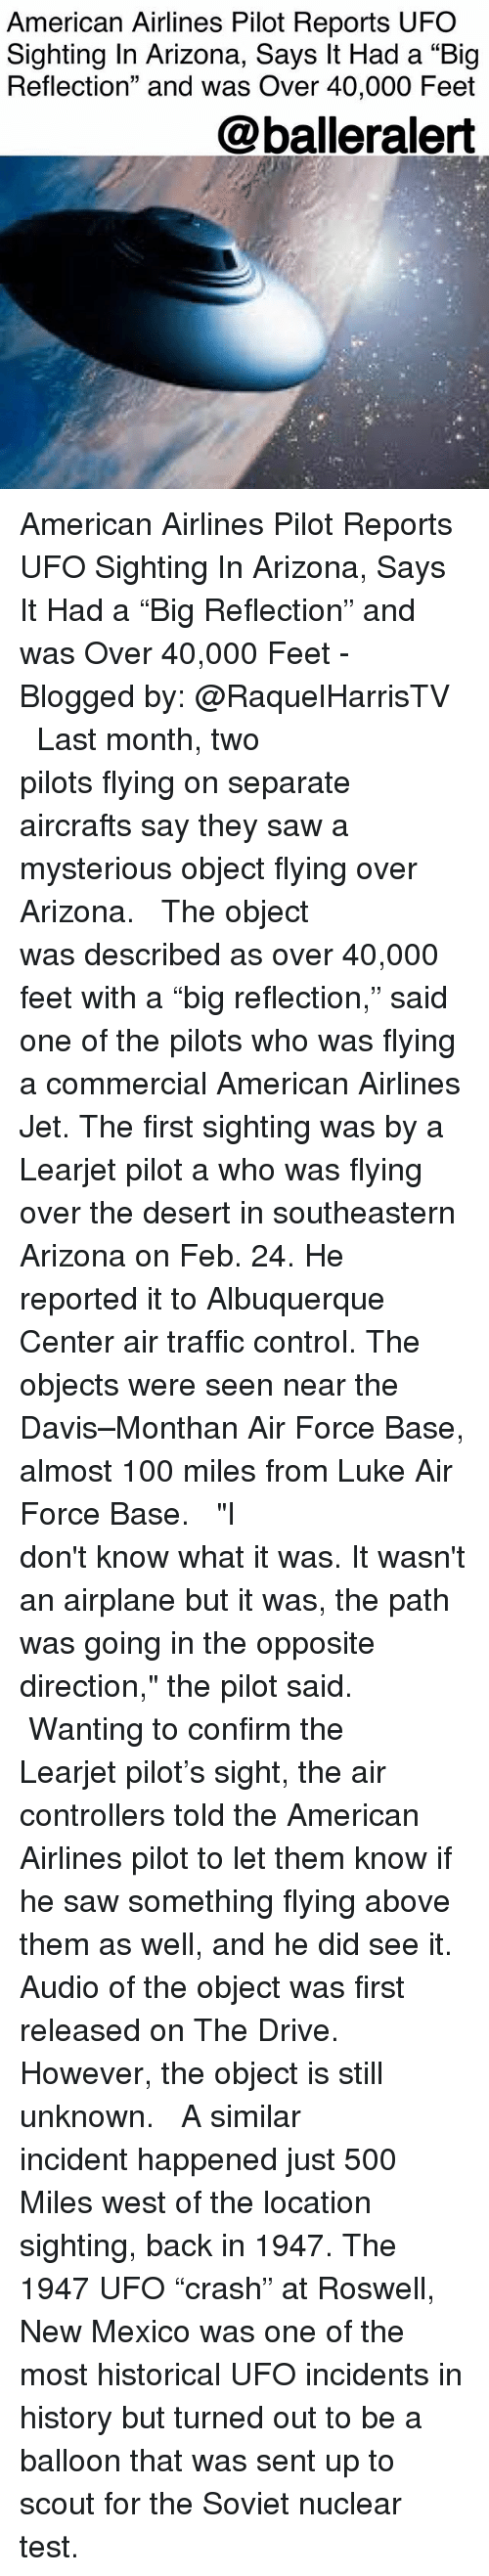 """American Airlines: American Airlines Pilot Reports UFO  Sighting In Arizona, Says It Had a """"Big  Reflection"""" and was Over 40,000 Feet  @balleralert American Airlines Pilot Reports UFO Sighting In Arizona, Says It Had a """"Big Reflection"""" and was Over 40,000 Feet - Blogged by: @RaquelHarrisTV ⠀⠀⠀⠀⠀⠀⠀⠀⠀ ⠀⠀⠀⠀⠀⠀⠀⠀⠀ Last month, two pilots flying on separate aircrafts say they saw a mysterious object flying over Arizona. ⠀⠀⠀⠀⠀⠀⠀⠀⠀ ⠀⠀⠀⠀⠀⠀⠀⠀⠀ The object was described as over 40,000 feet with a """"big reflection,"""" said one of the pilots who was flying a commercial American Airlines Jet. The first sighting was by a Learjet pilot a who was flying over the desert in southeastern Arizona on Feb. 24. He reported it to Albuquerque Center air traffic control. The objects were seen near the Davis–Monthan Air Force Base, almost 100 miles from Luke Air Force Base. ⠀⠀⠀⠀⠀⠀⠀⠀⠀ ⠀⠀⠀⠀⠀⠀⠀⠀⠀ """"I don't know what it was. It wasn't an airplane but it was, the path was going in the opposite direction,"""" the pilot said. ⠀⠀⠀⠀⠀⠀⠀⠀⠀ ⠀⠀⠀⠀⠀⠀⠀⠀⠀ Wanting to confirm the Learjet pilot's sight, the air controllers told the American Airlines pilot to let them know if he saw something flying above them as well, and he did see it. Audio of the object was first released on The Drive. However, the object is still unknown. ⠀⠀⠀⠀⠀⠀⠀⠀⠀ ⠀⠀⠀⠀⠀⠀⠀⠀⠀ A similar incident happened just 500 Miles west of the location sighting, back in 1947. The 1947 UFO """"crash"""" at Roswell, New Mexico was one of the most historical UFO incidents in history but turned out to be a balloon that was sent up to scout for the Soviet nuclear test."""